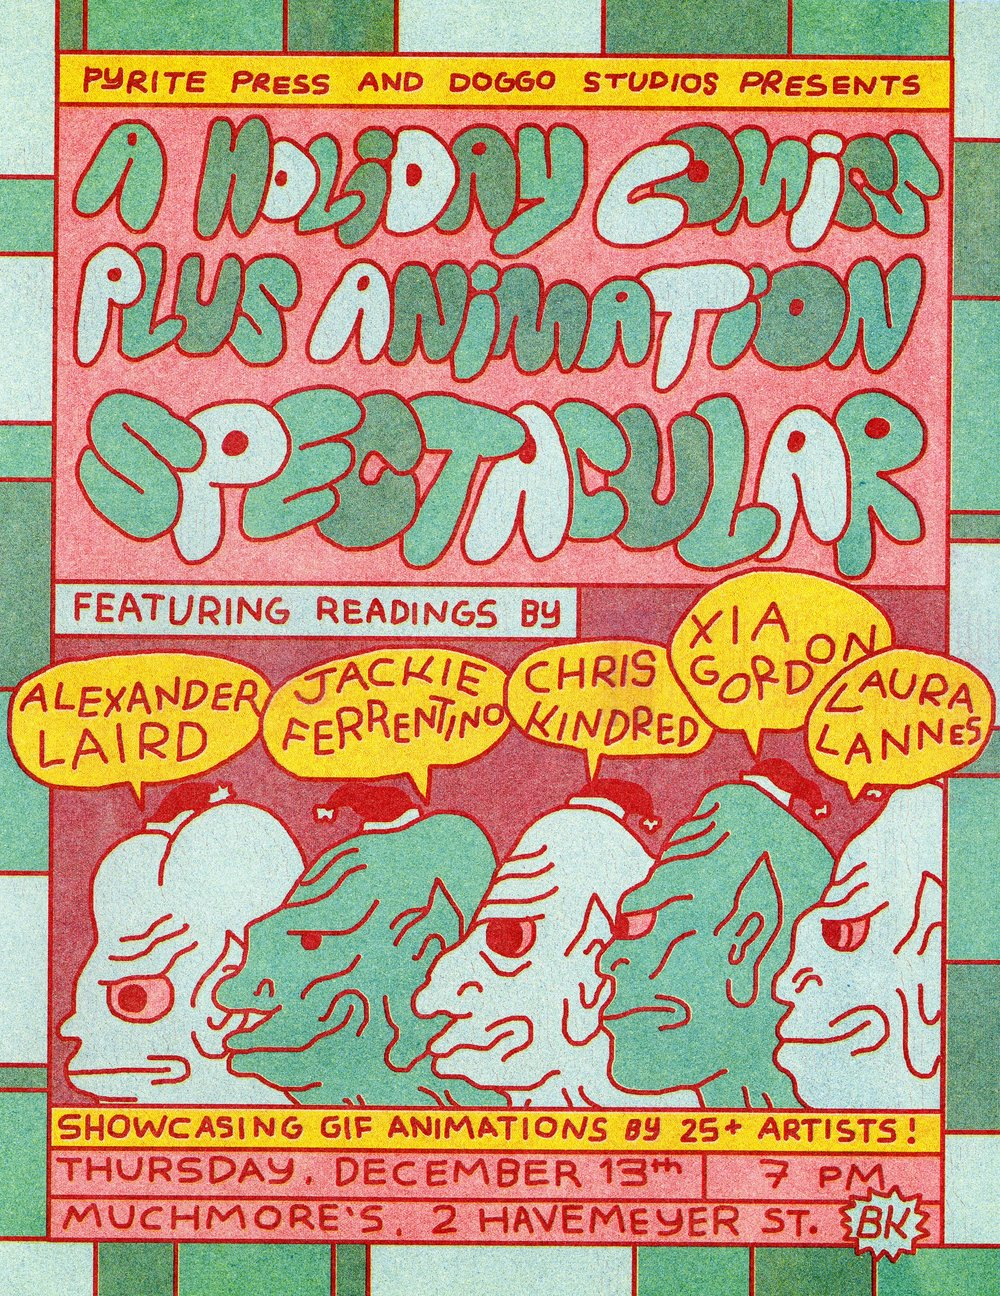 poster for comic reading in december 2018. printed on risograph. i was one of the readers!